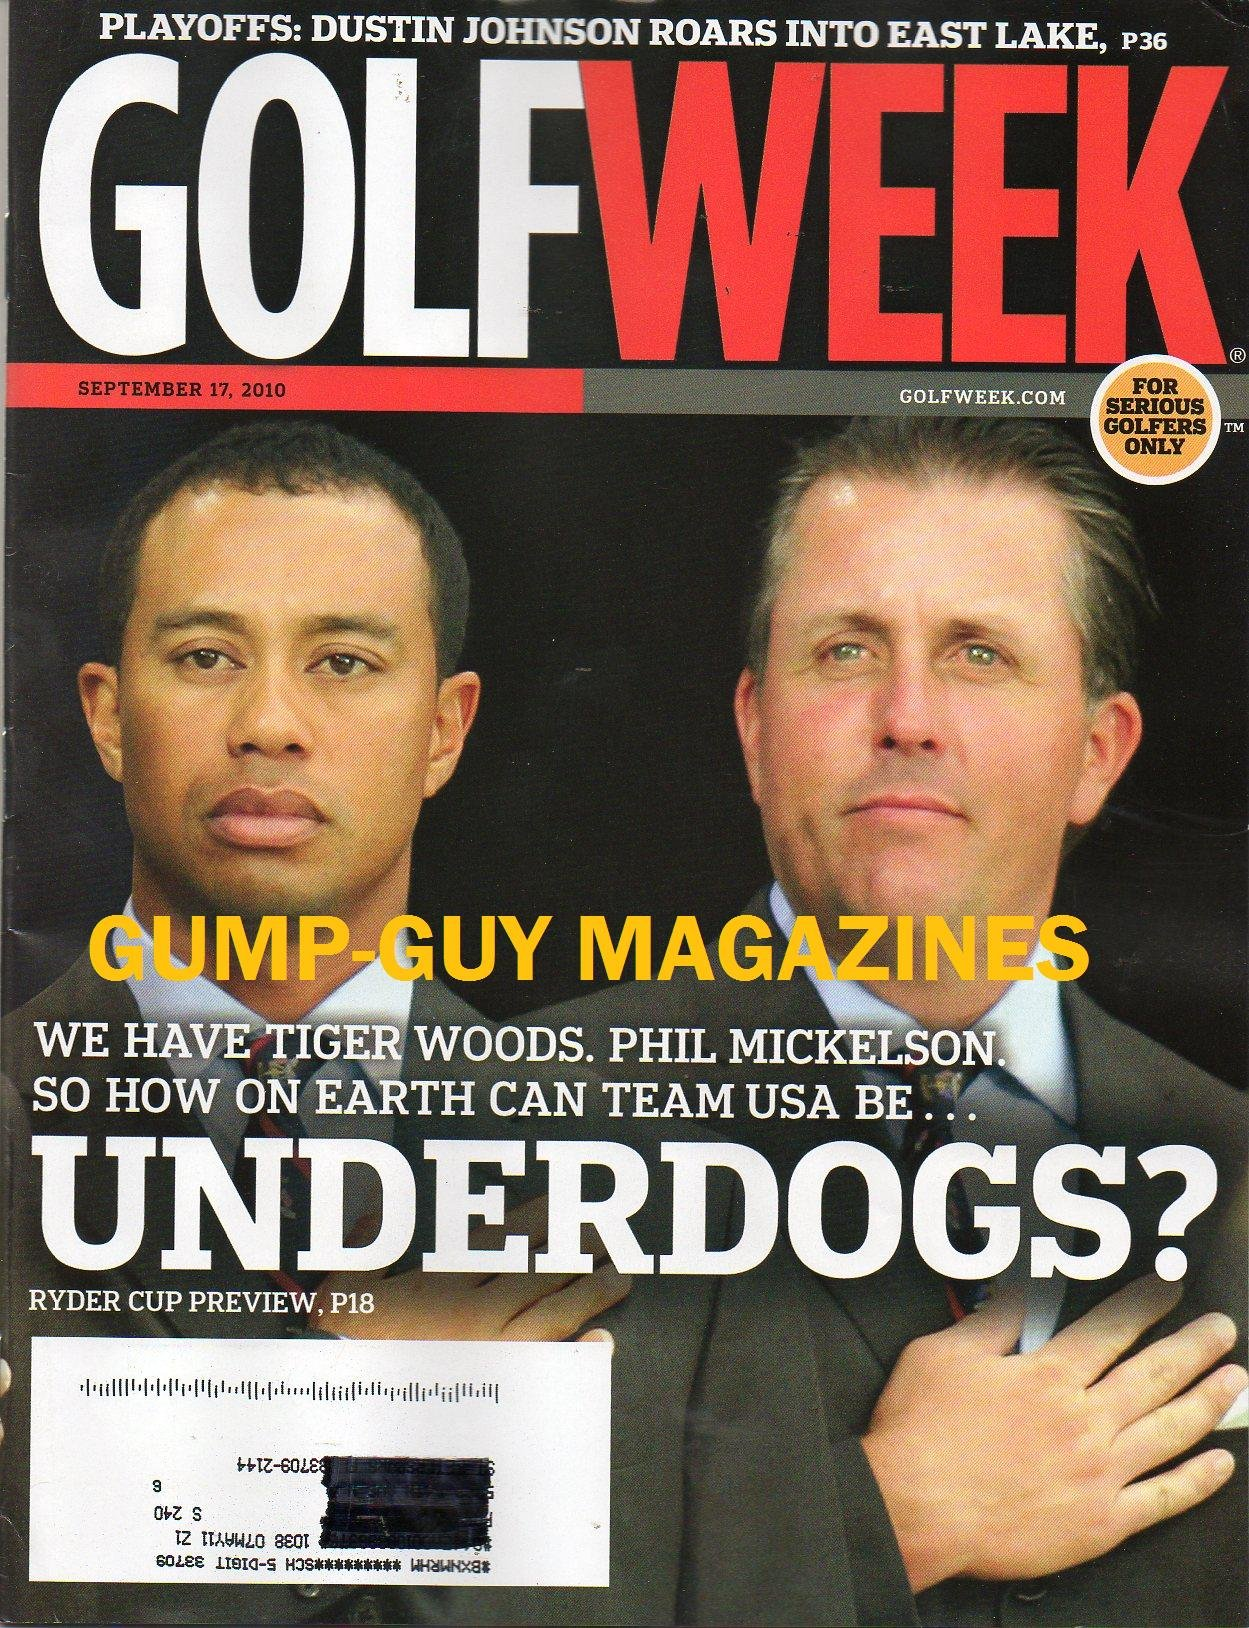 Download Golf Week Magazine September 17 2010 PLAYOFFS: DUSTIN JOHNSON ROARS INTO EAST LAKE We Have Tiger Woods, Phil MicKelson. So How On Earth Can Team USA Be Underdogs? Ryder Cup Preview PDF